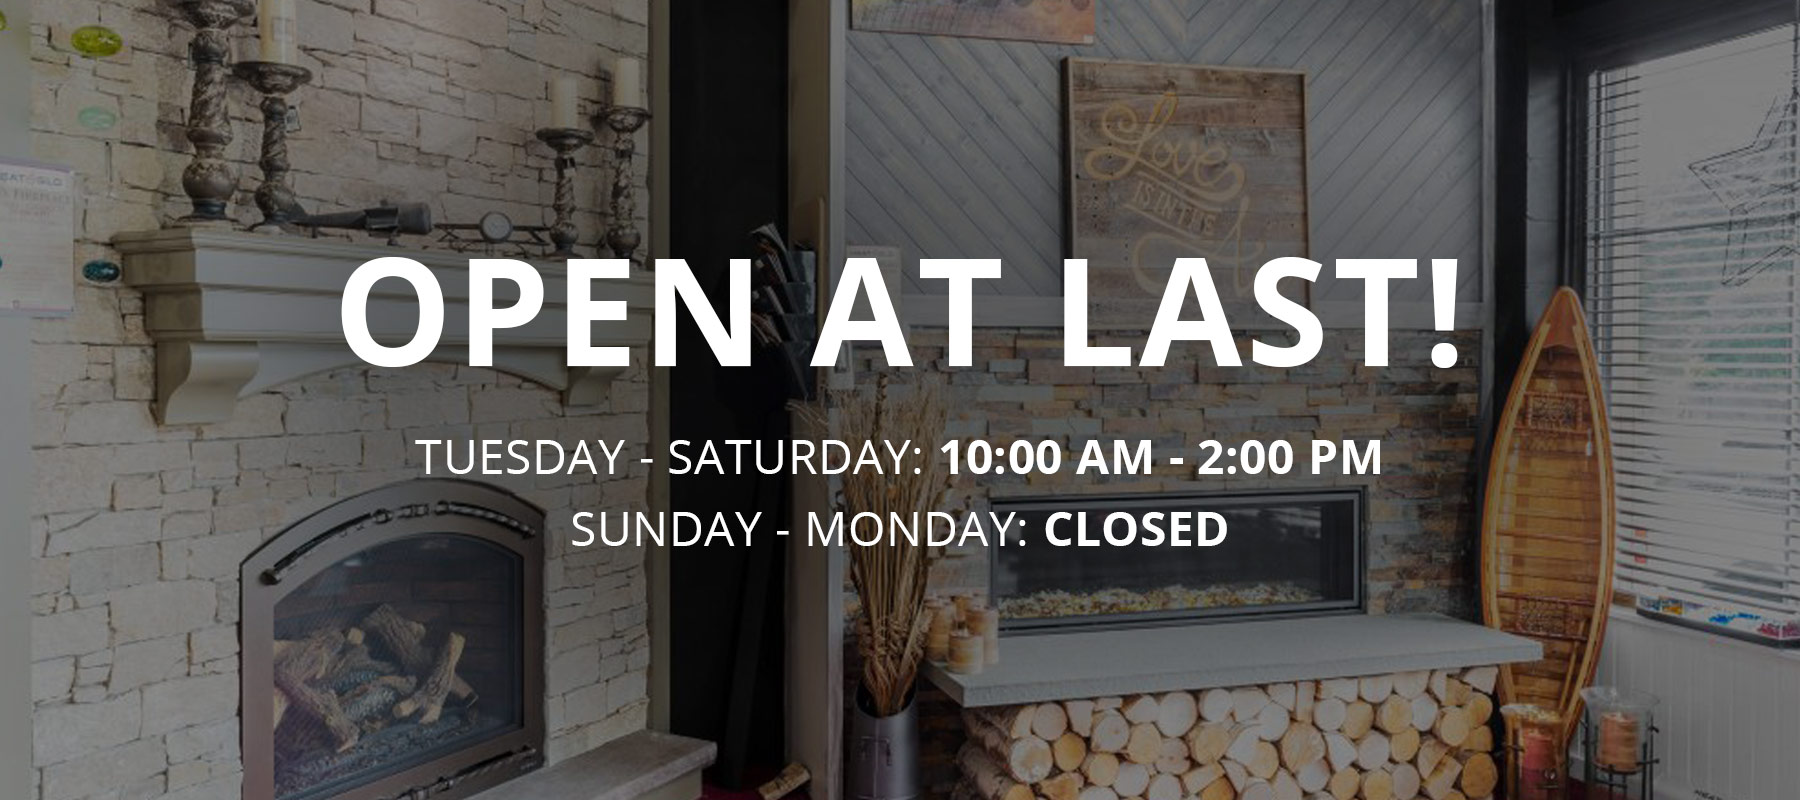 Open At Last